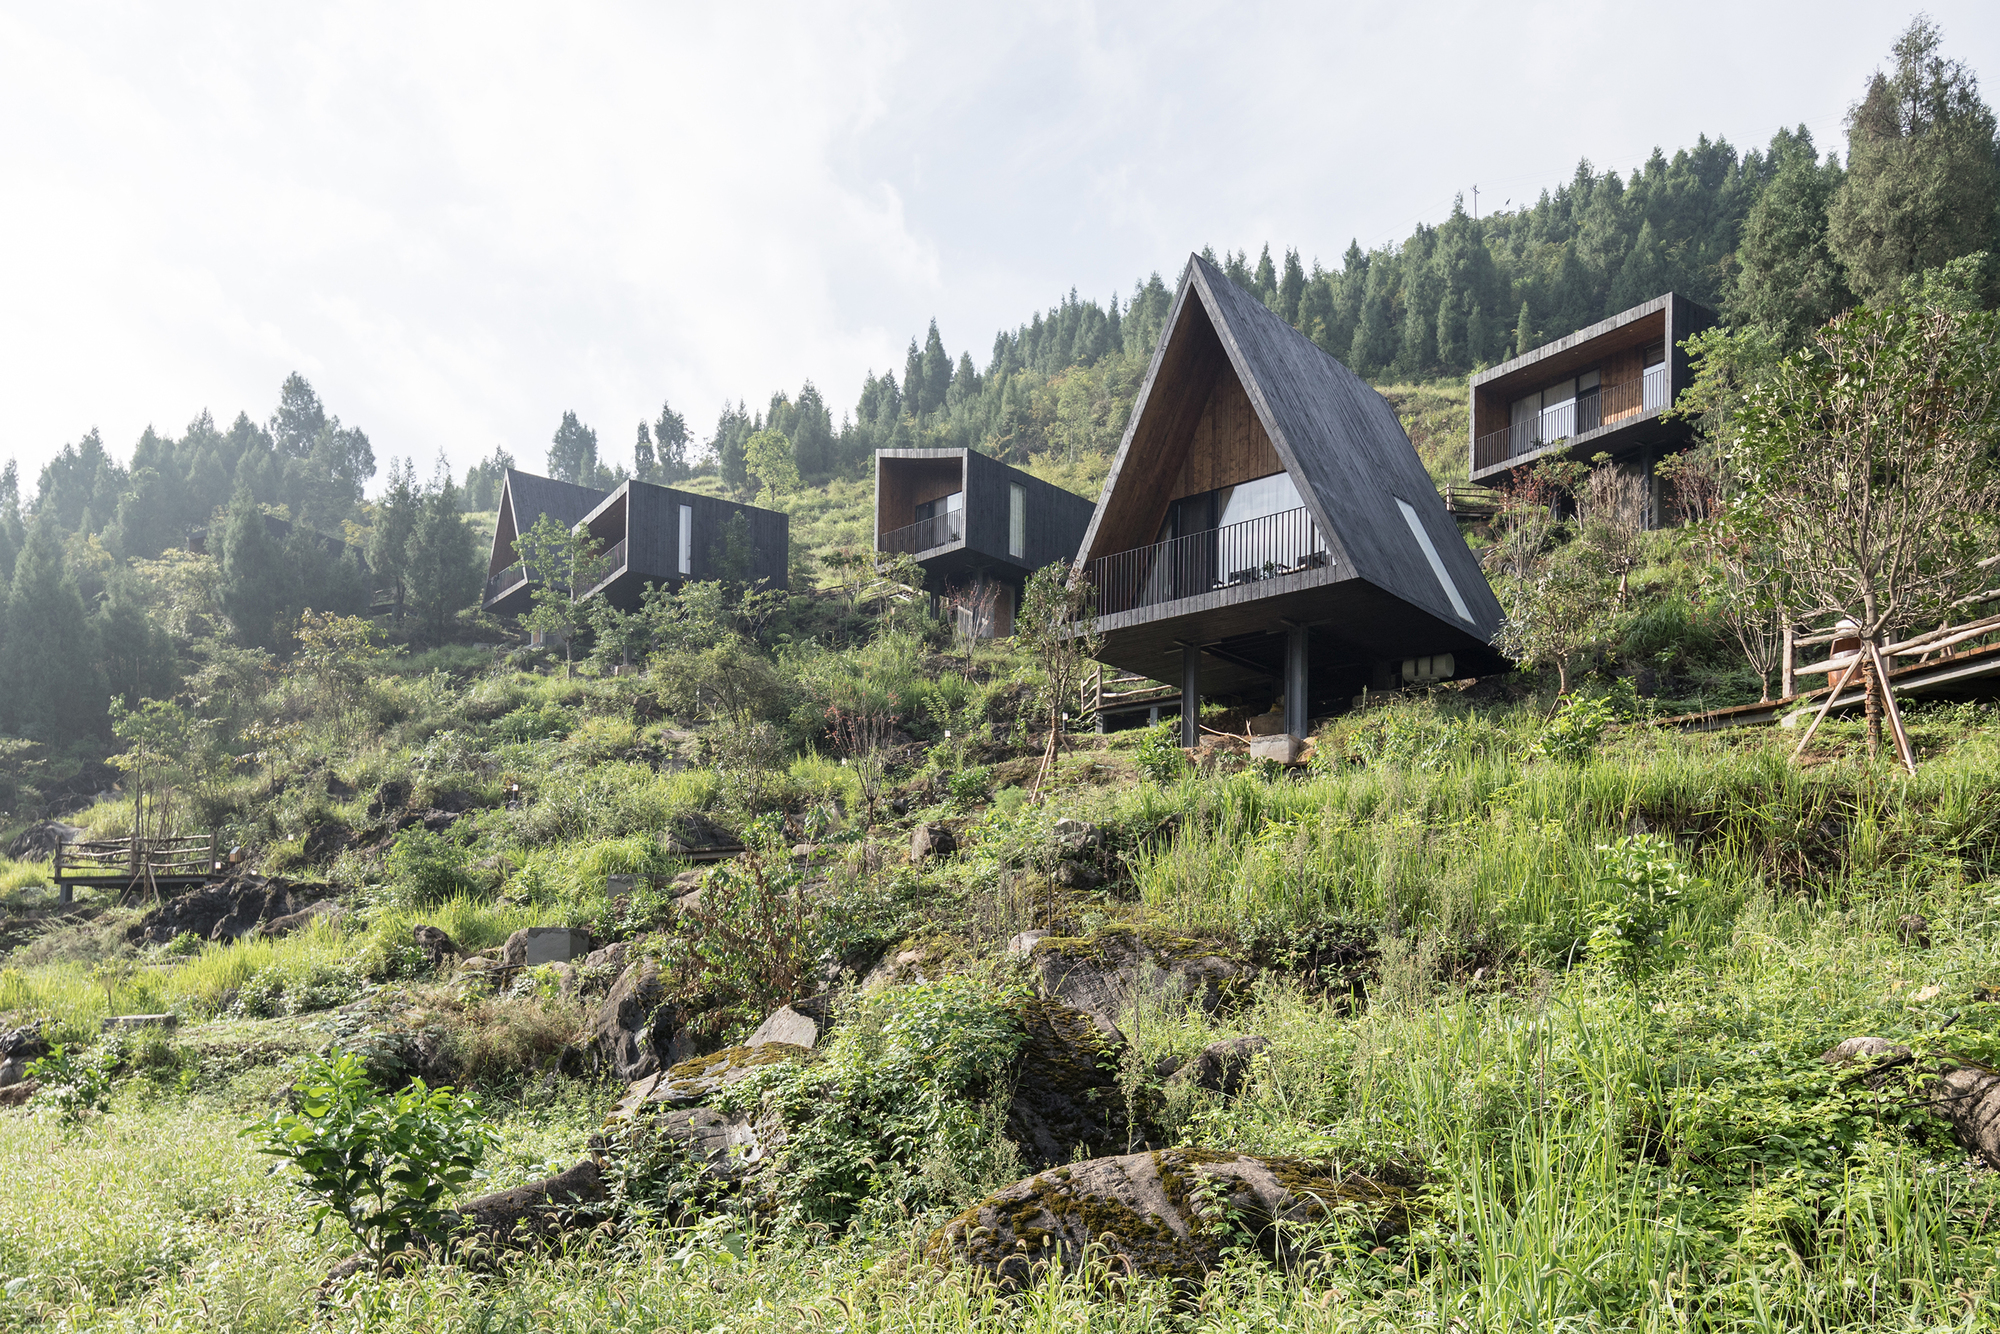 Gallery of Architecture and Topography: 15 Projects with Different Approaches to Relief - 29